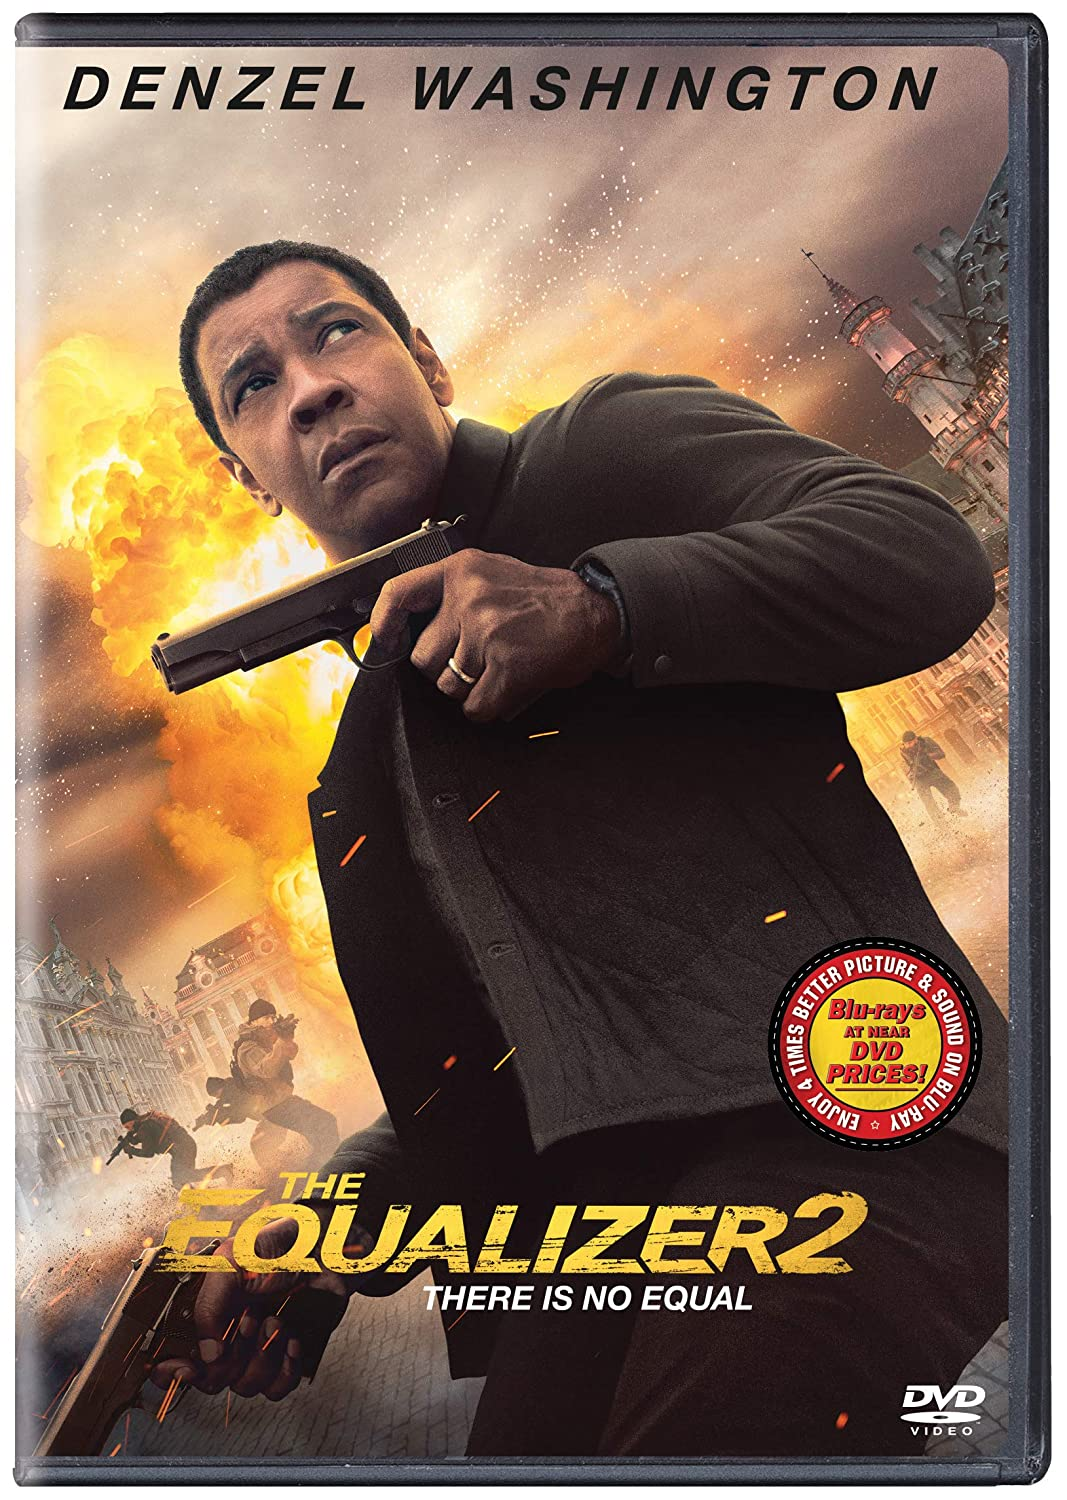 Amazonin Buy The Equalizer 2 Dvd Blu Ray Online At Best Prices In